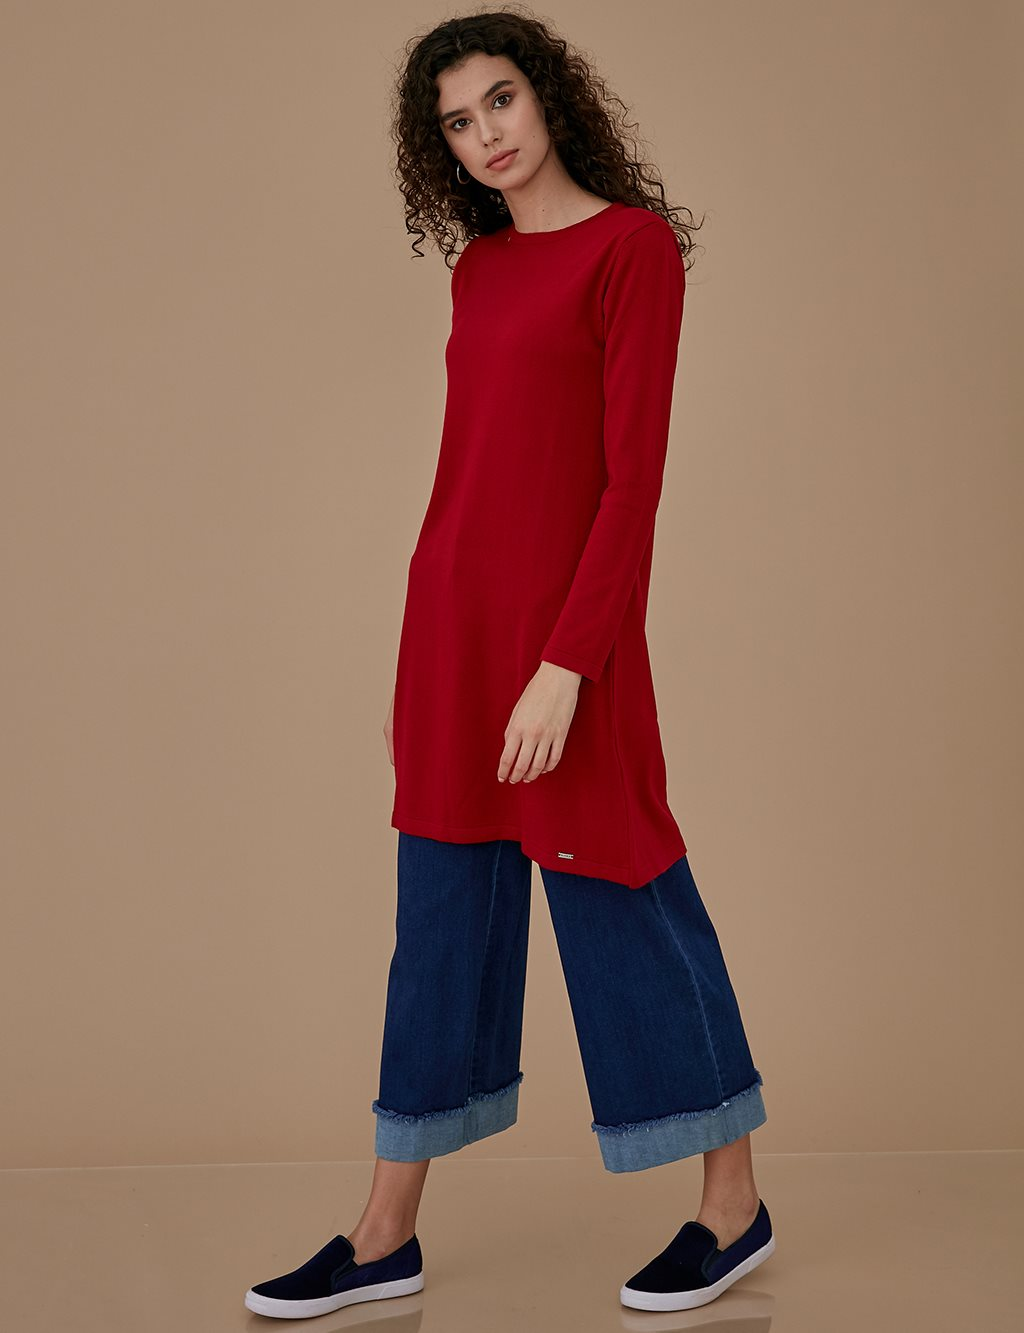 Crew Neck Basic Knitwear A9 TRK41 Red